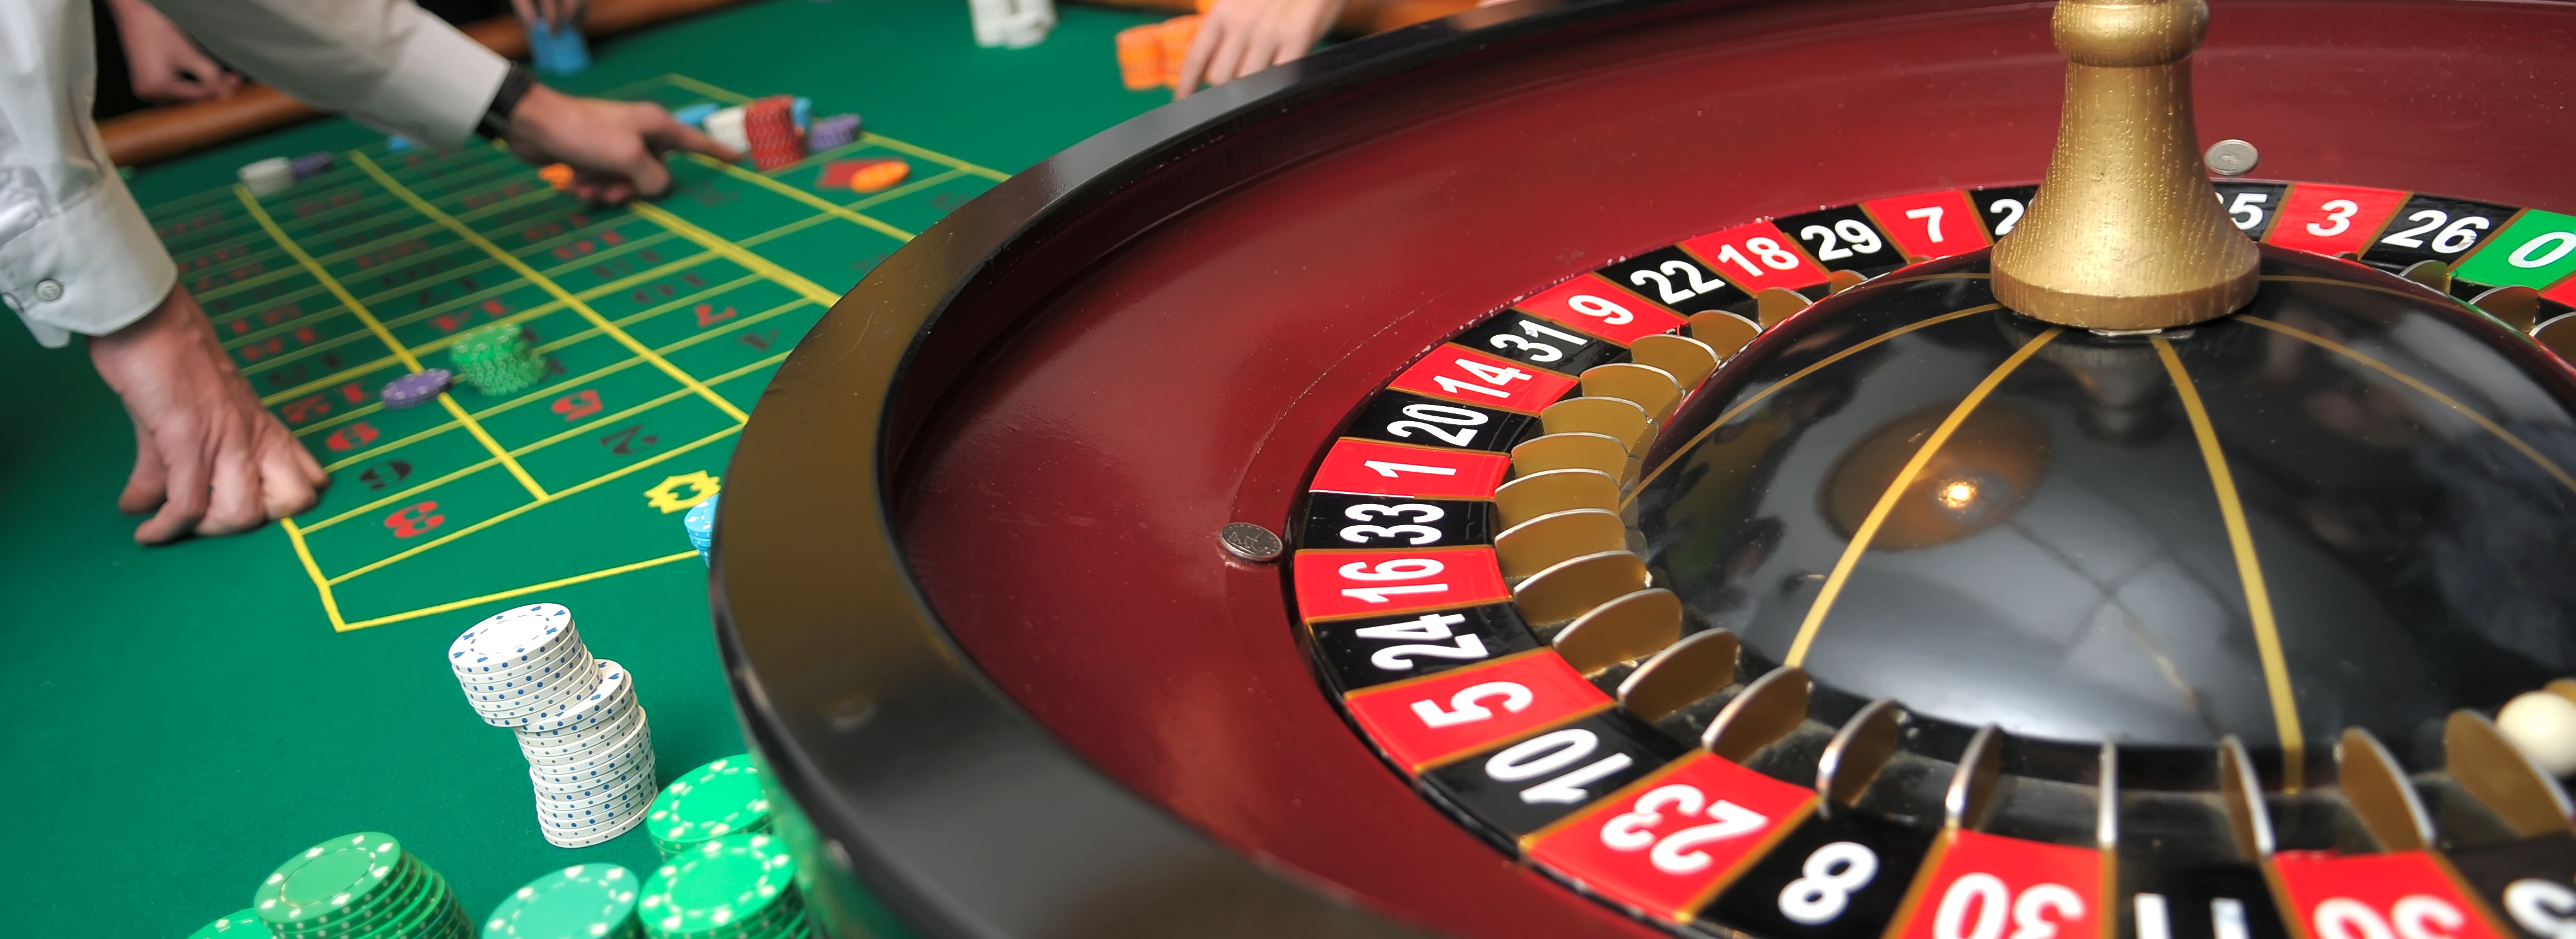 essays on casino gambling Open document below is an essay on ethical problems of gambling from anti essays, your source for research papers, essays, and term paper examples.